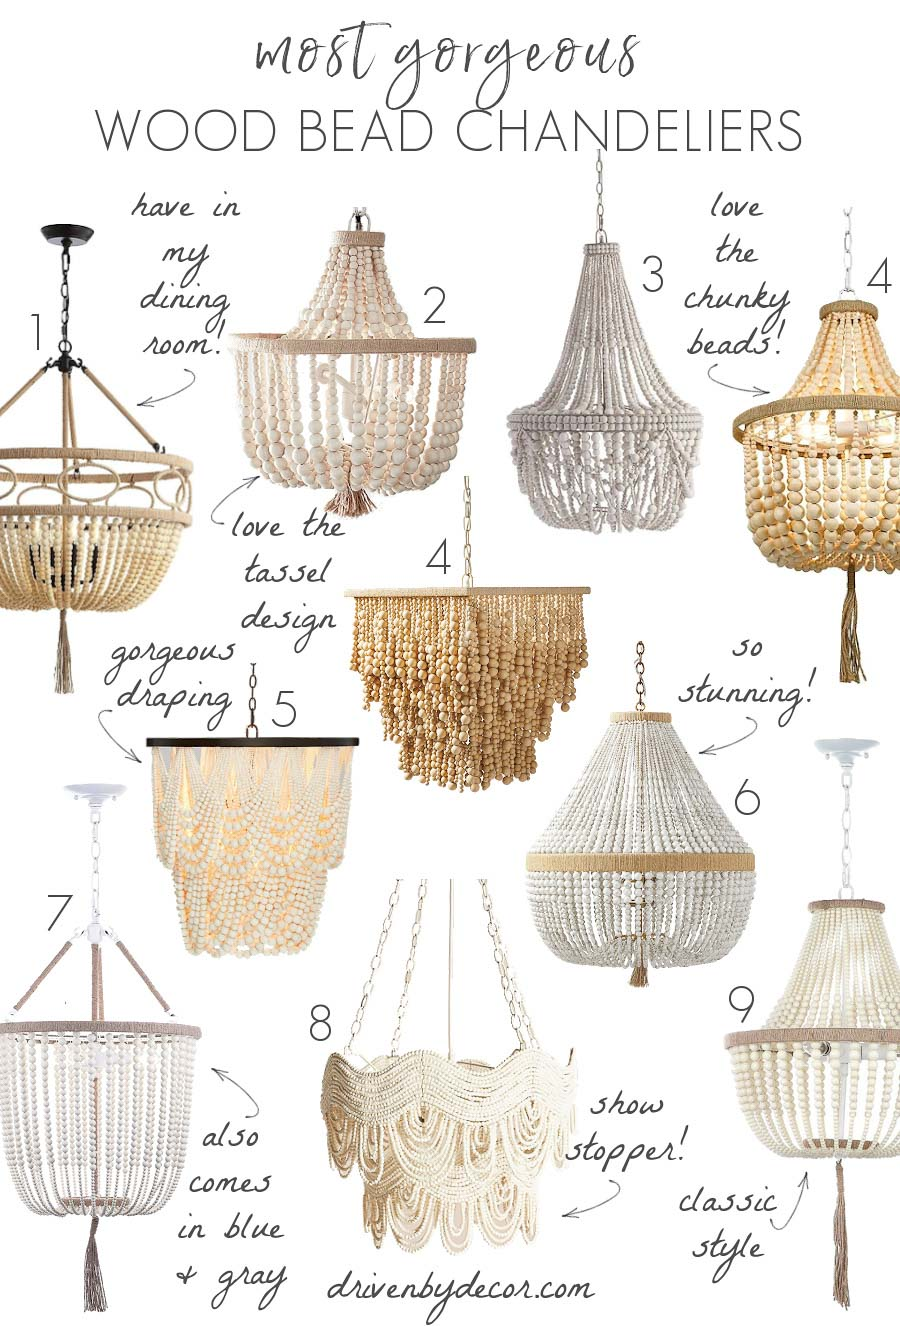 Looking for a wood bead chandelier? These are my favorites I found in my search!